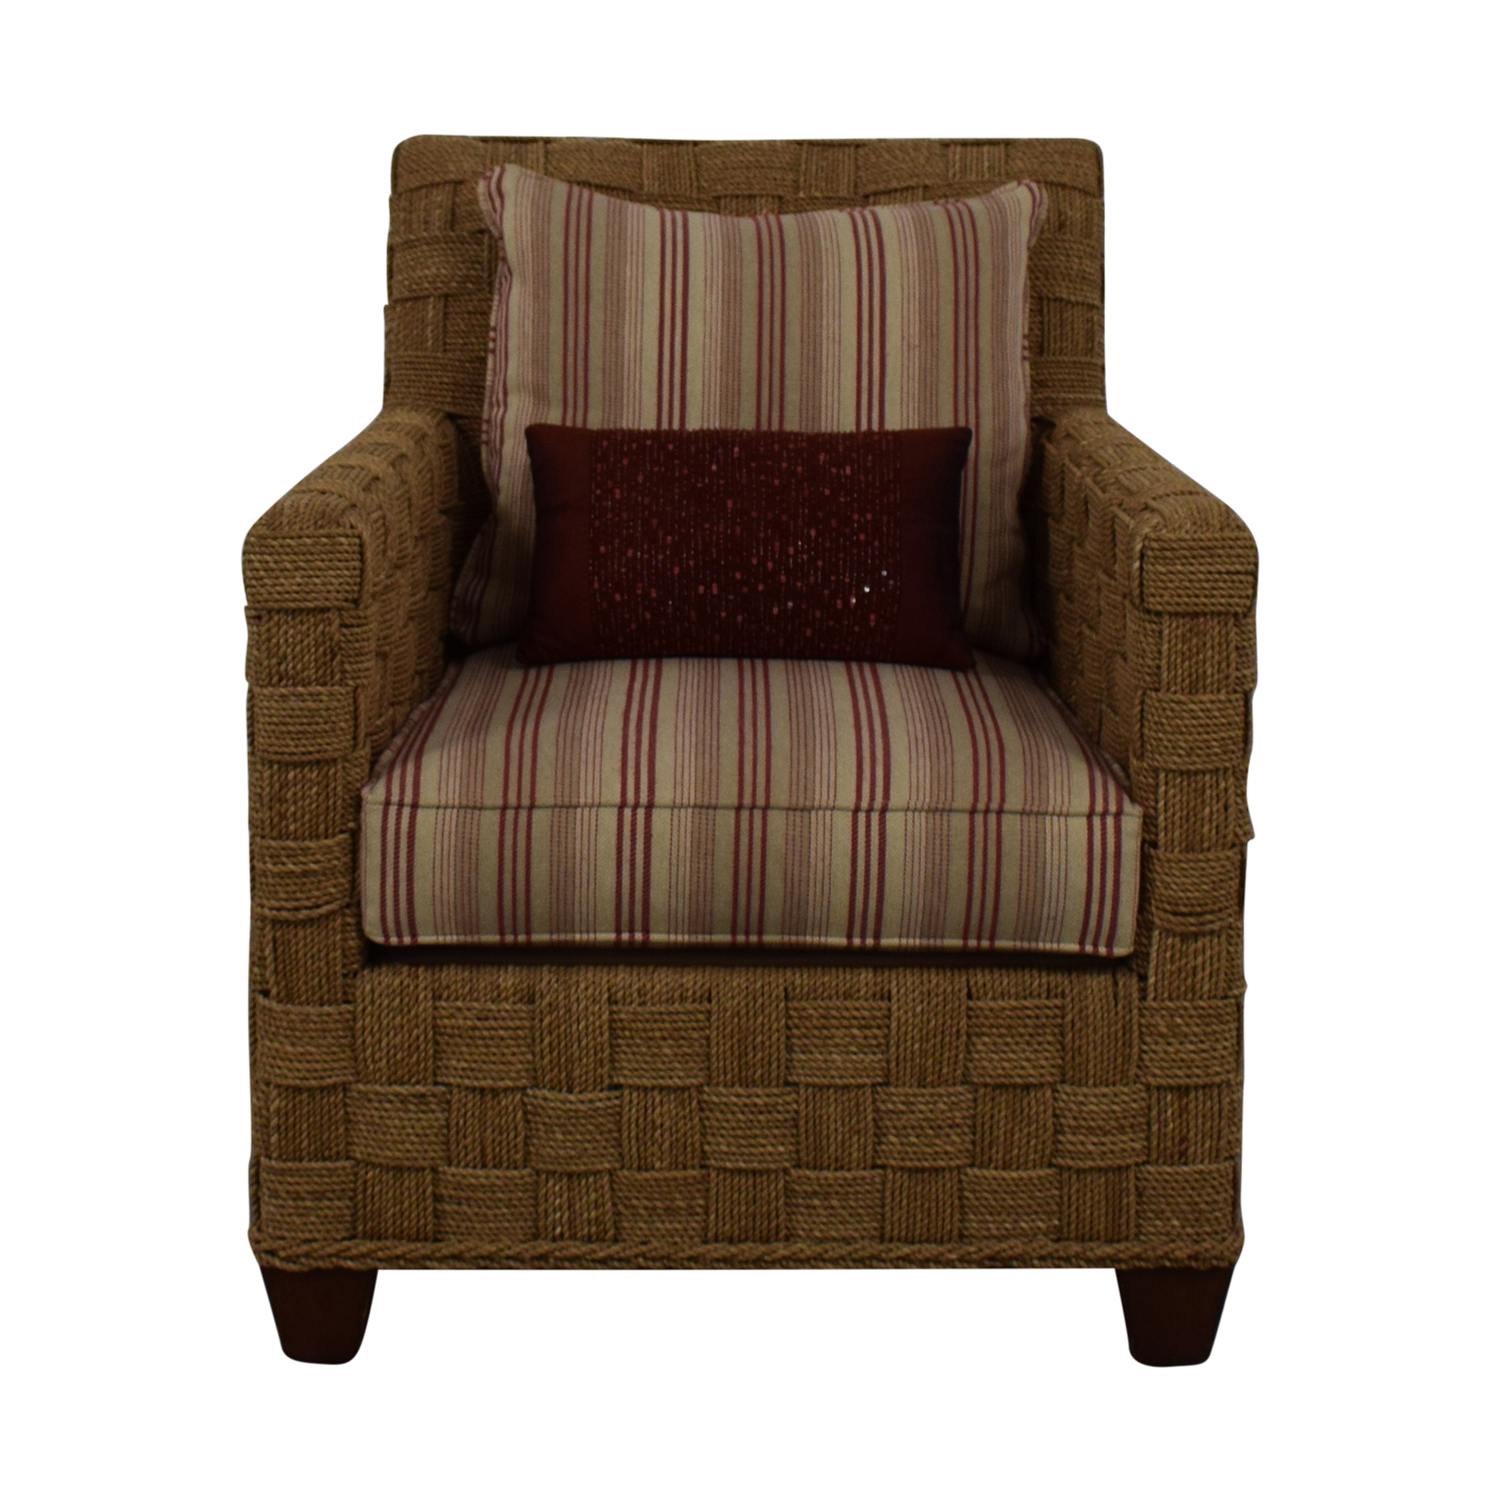 Ethan Allen Ethan Allen Balta Accent Chair discount